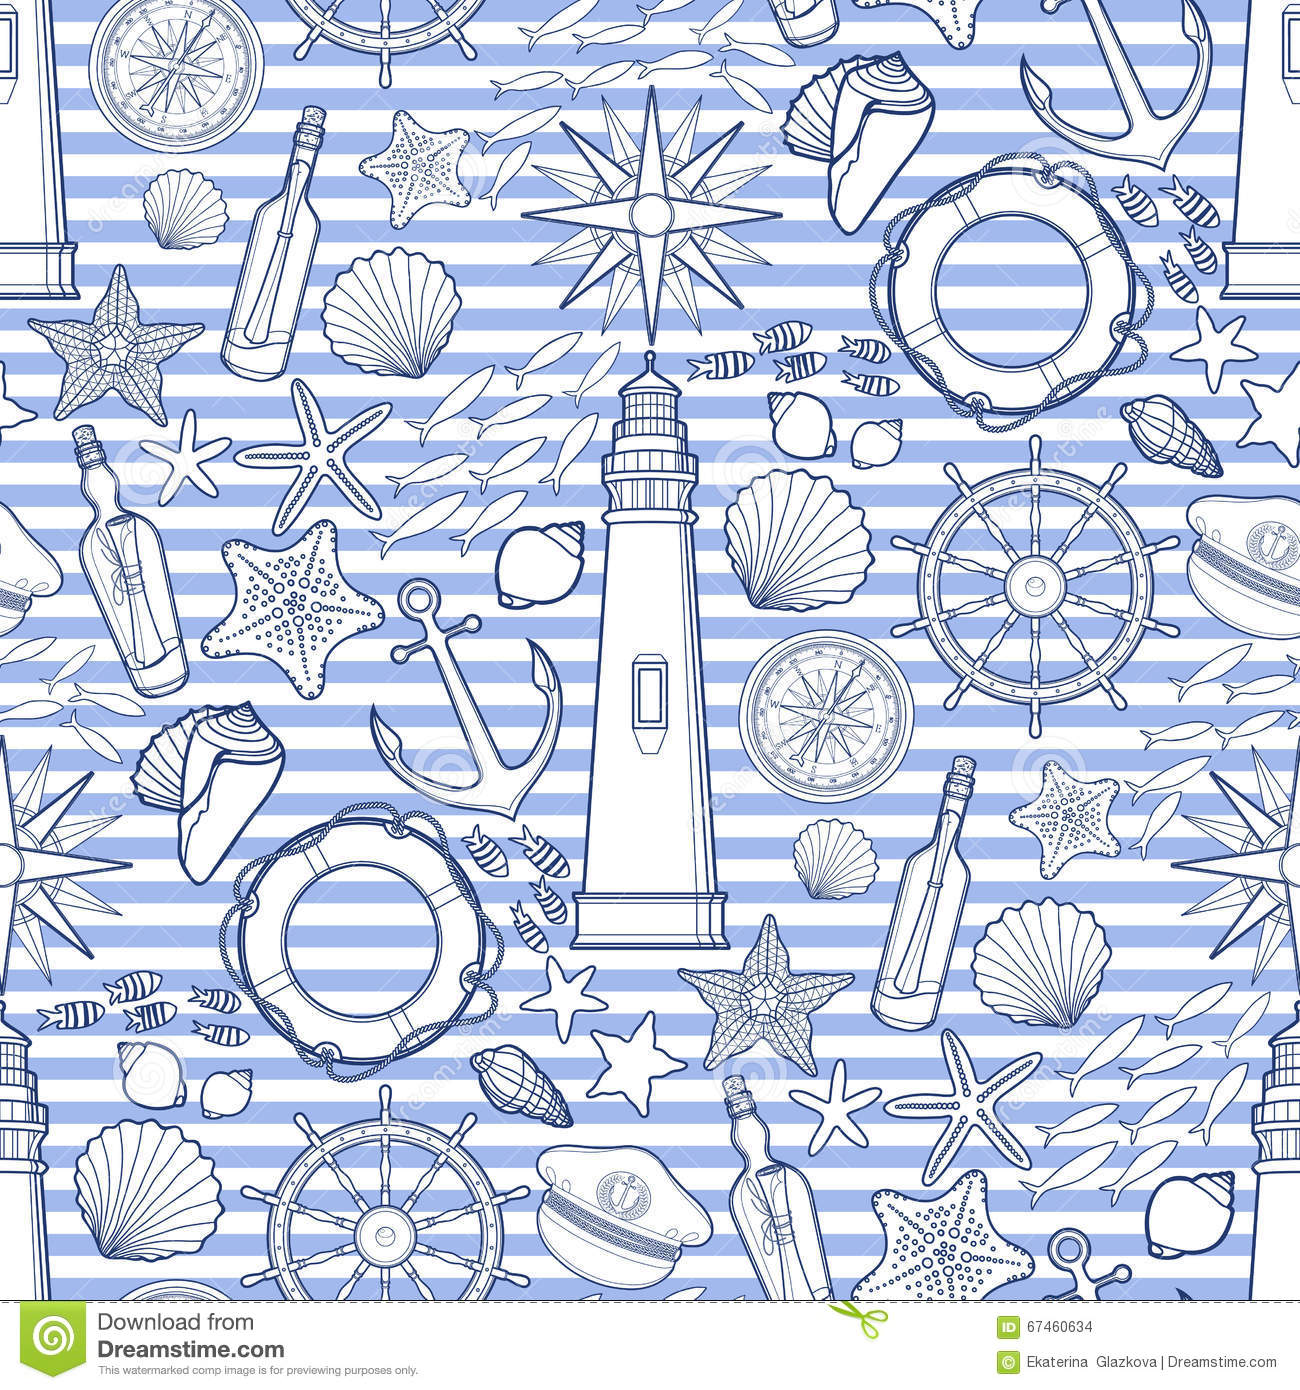 ocean background coloring pages - graphic nautical emblem cartoon vector